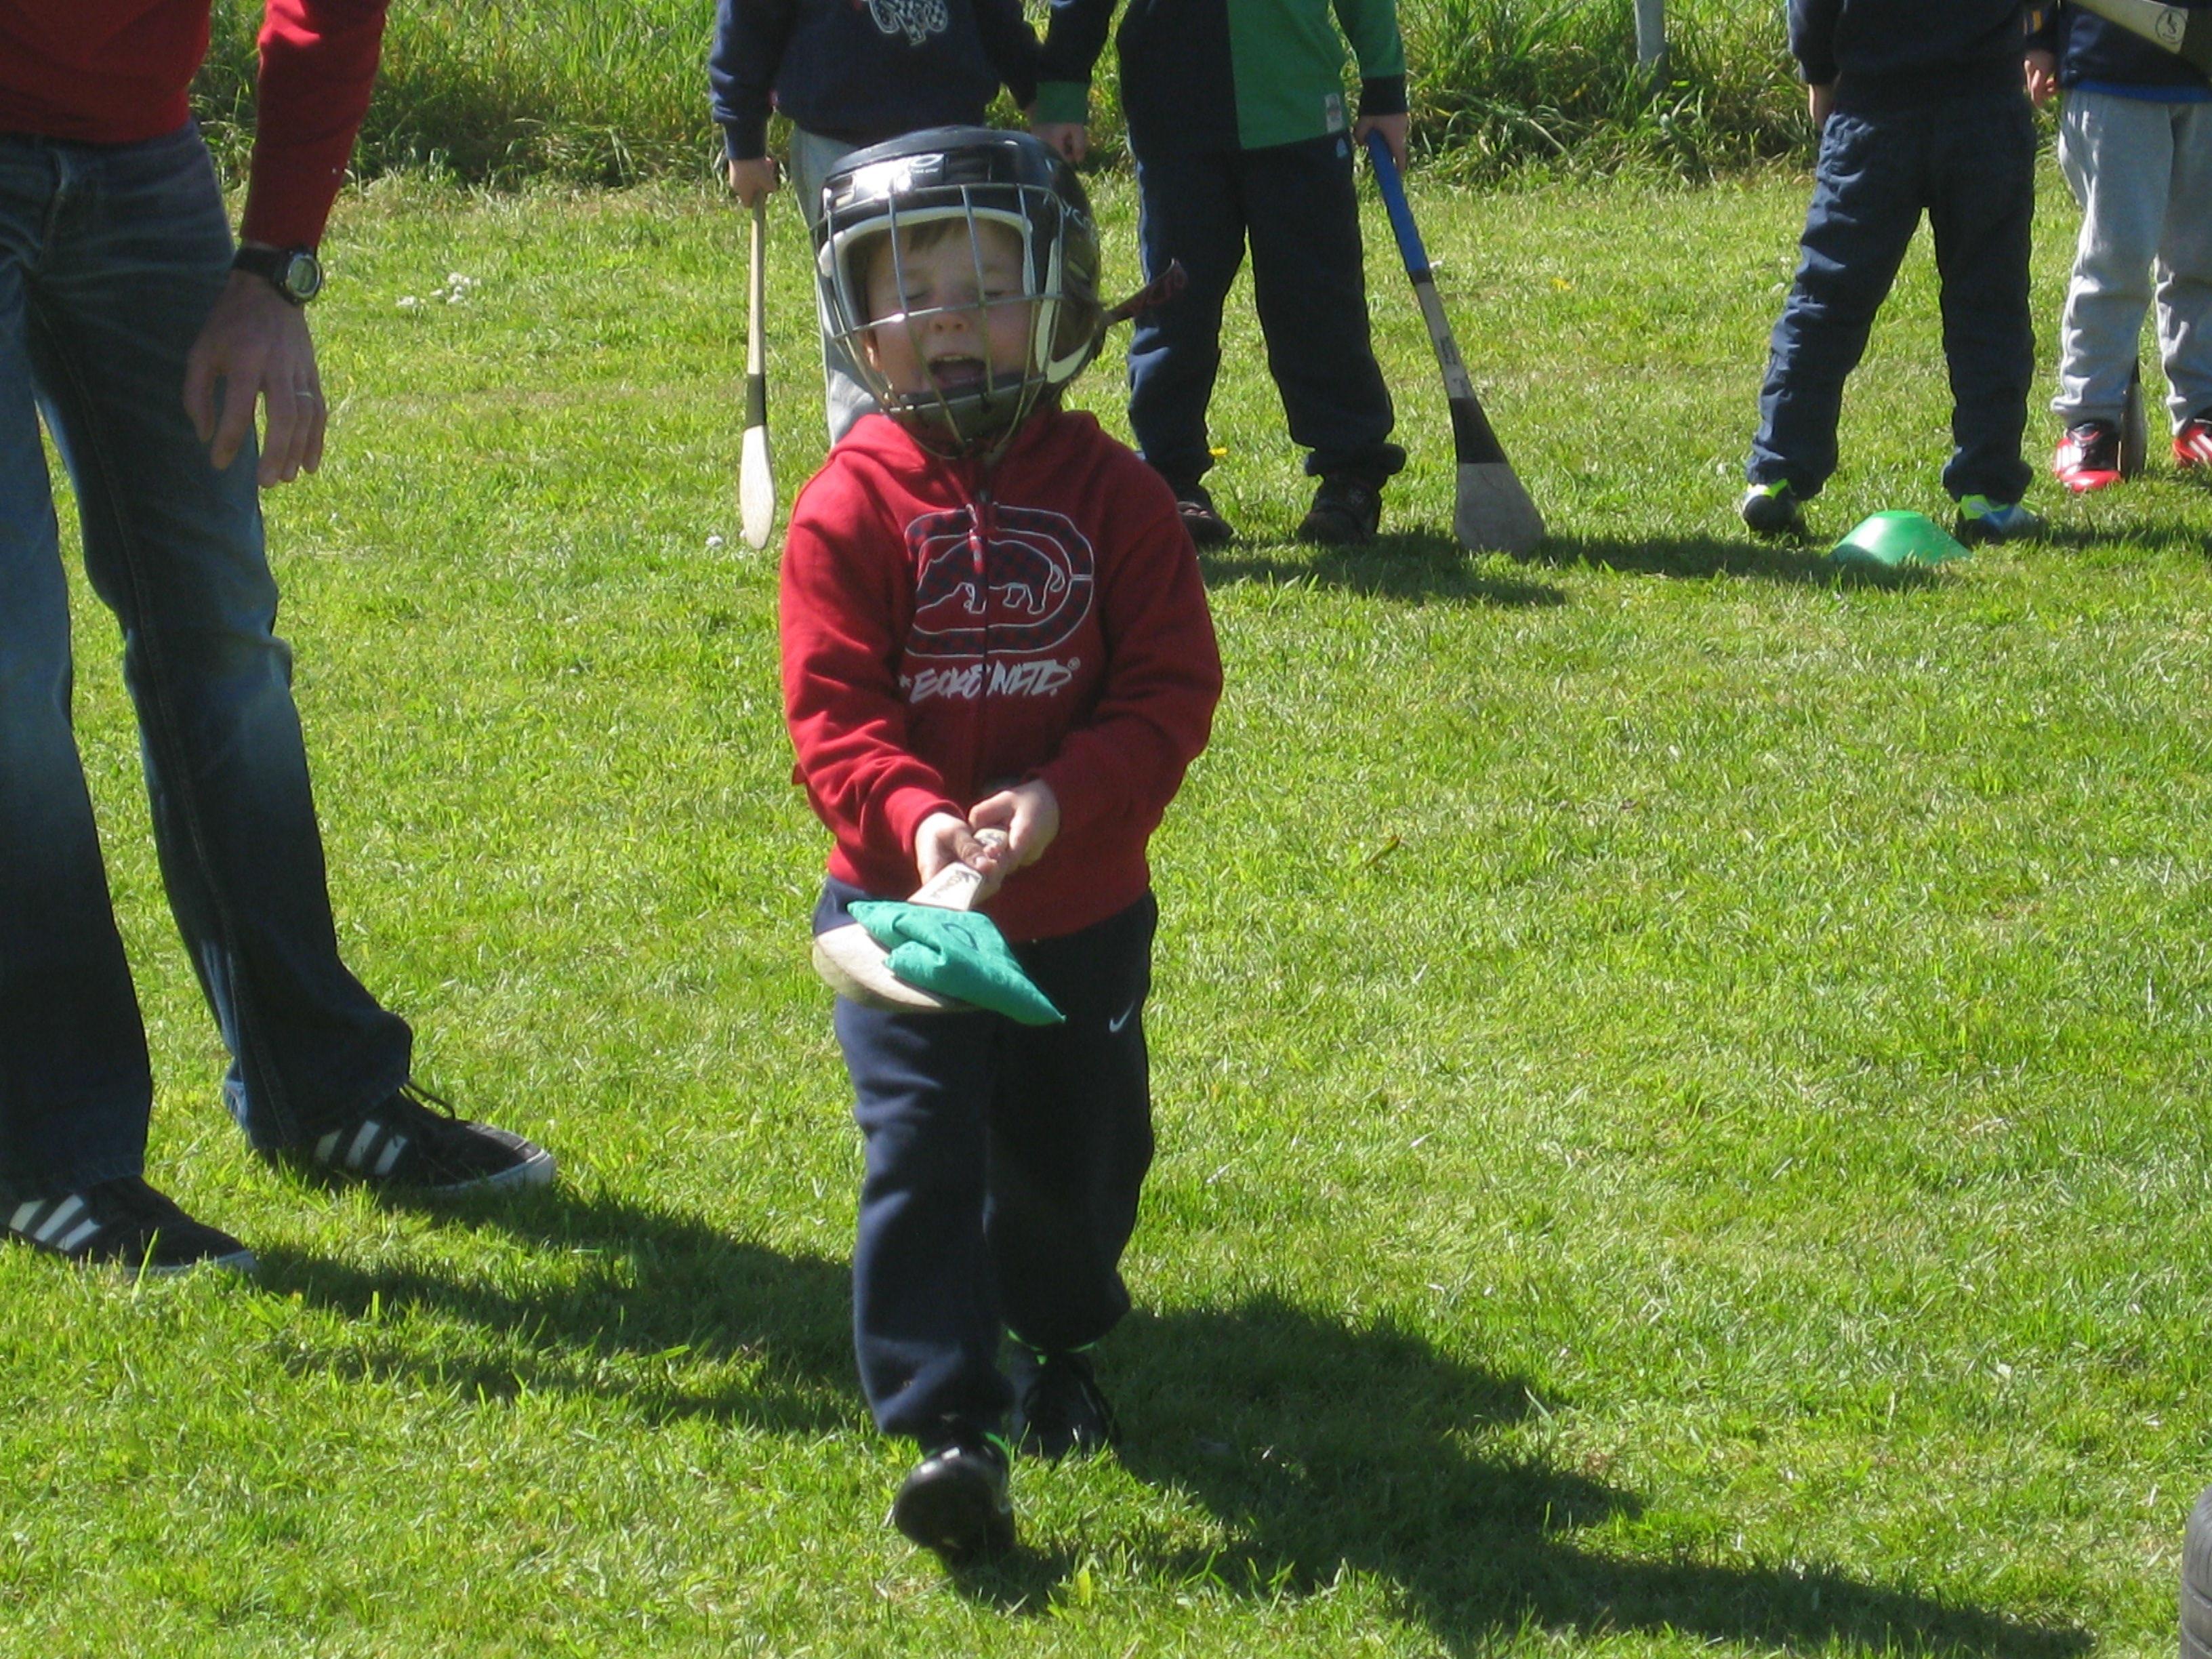 U6 in action funhurling